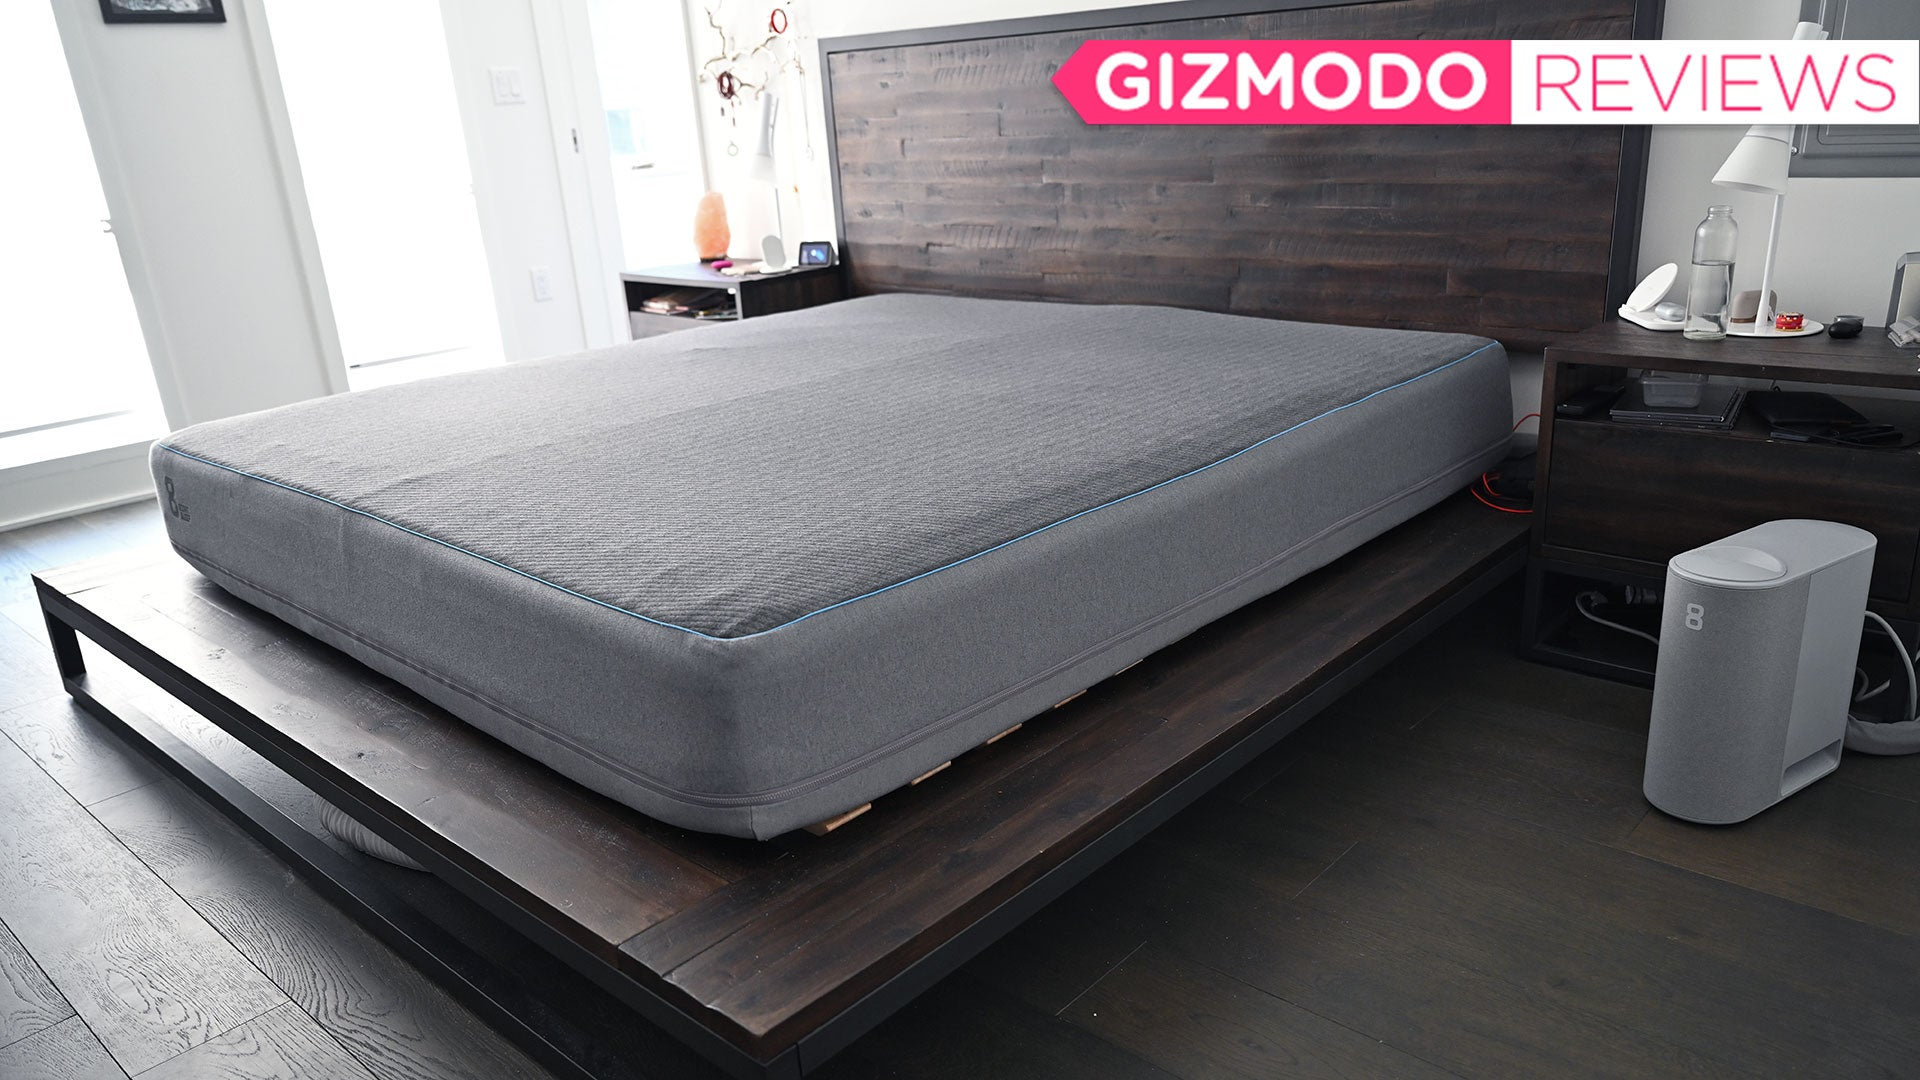 My Normal Bed Seems Barbaric After Sleeping On This Temperature-Controlled Smart Mattress